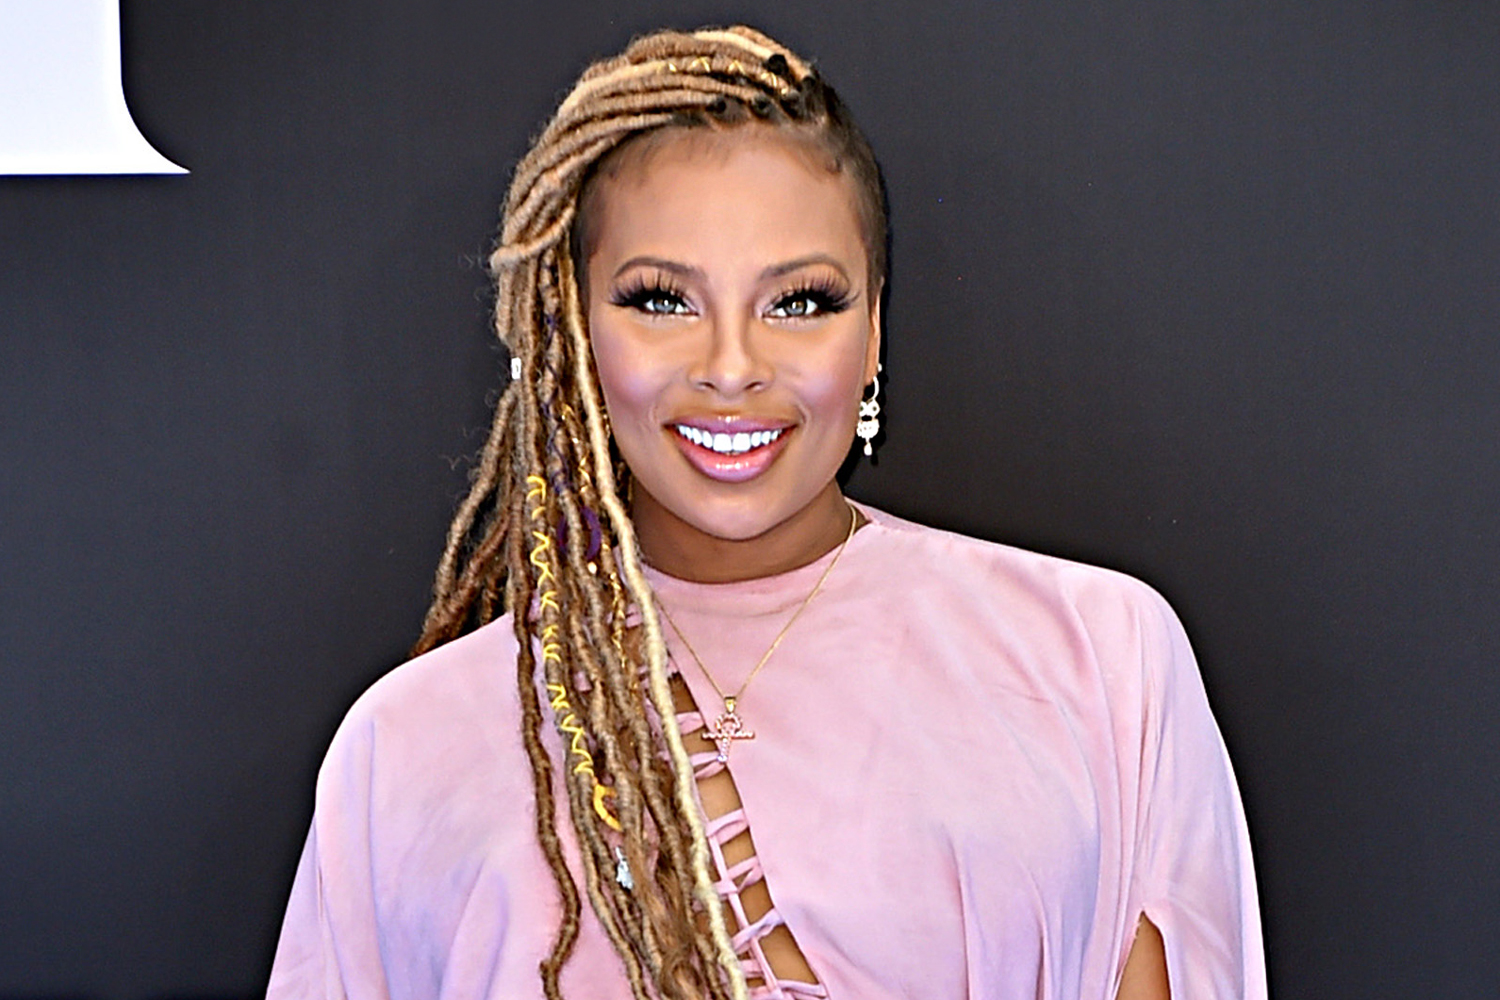 Eva Marcille Celebrates Her 36th Birthday - See Her Message To Mark The Event